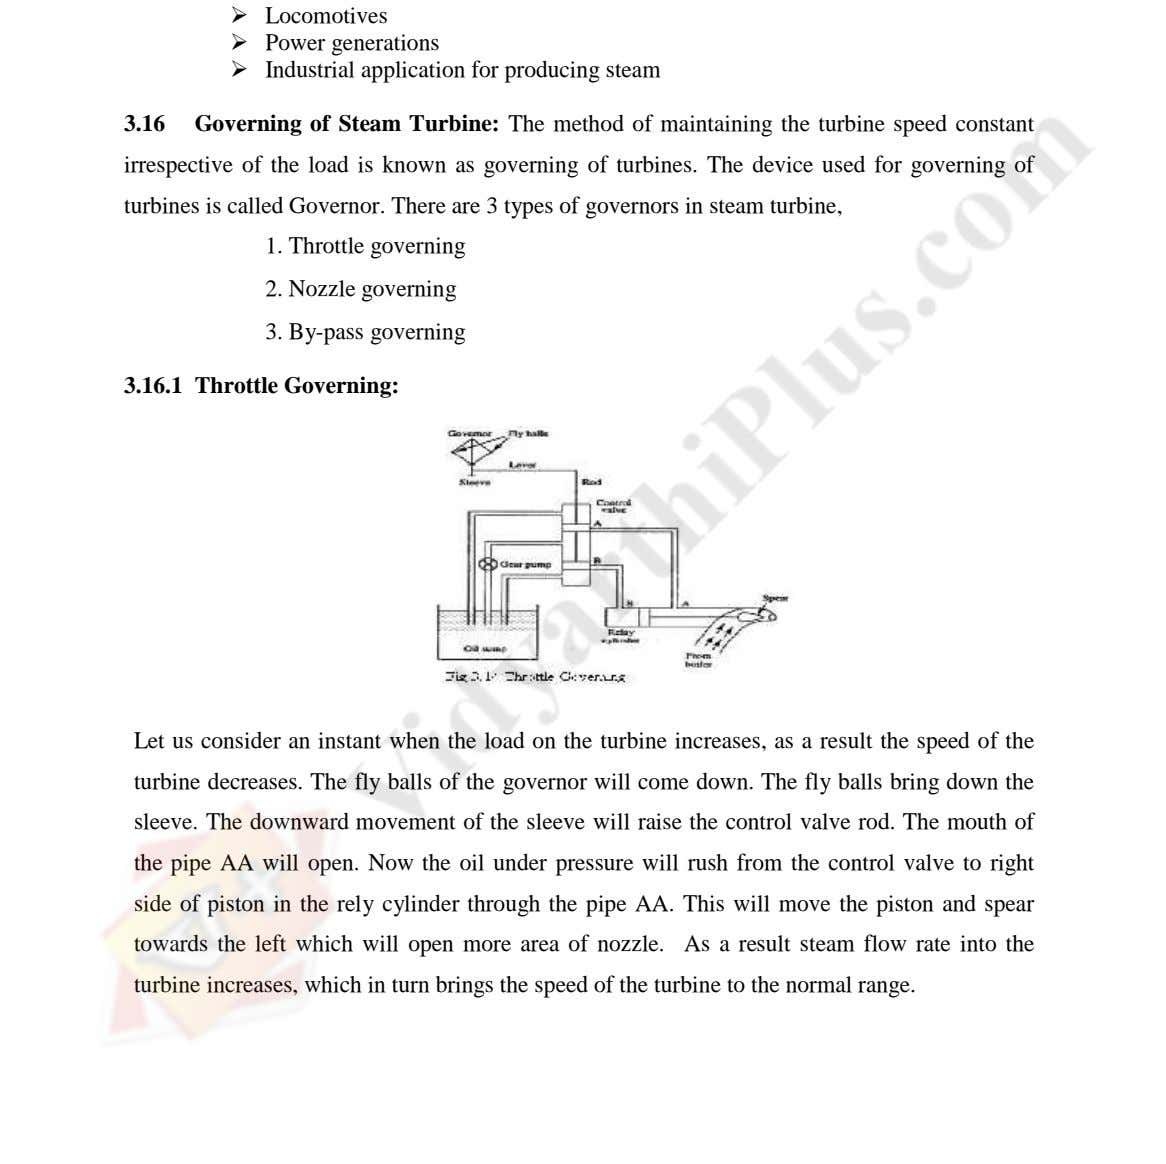 Locomotives Power generations Industrial application for producing steam 3.16 Governing of Steam Turbine: The method